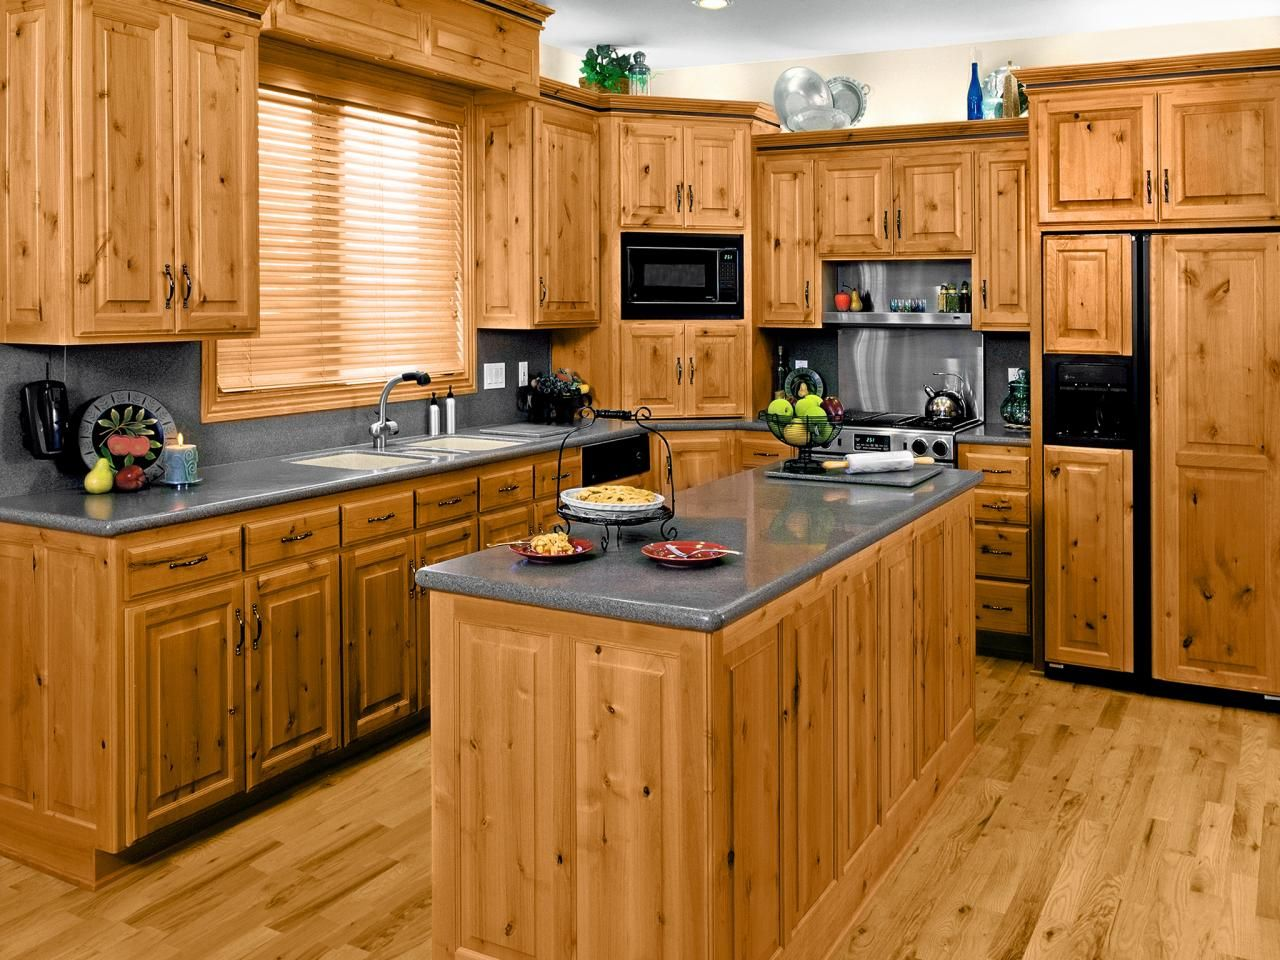 Pine Kitchen Cabinets Pictures Options Tips Ideas Rustic Kitchen Cabinets Kitchen Cabinet Styles Rustic Kitchen